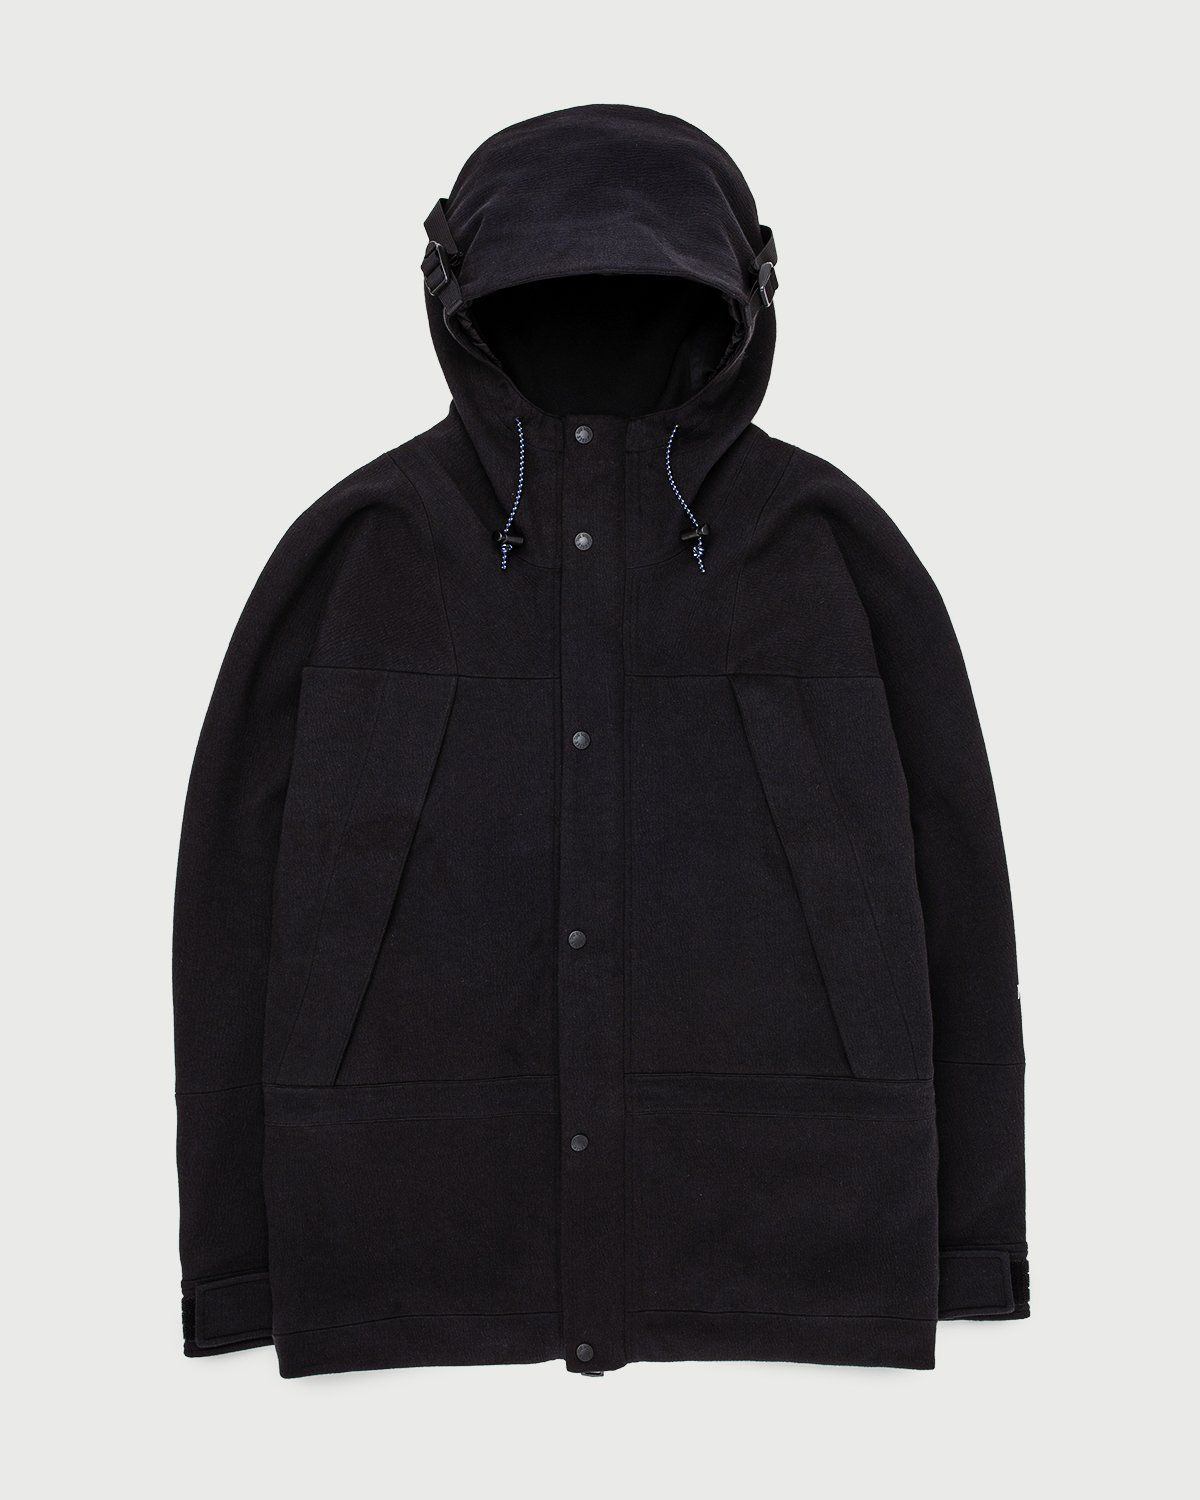 The North Face Black Series - Spacer Knit Mountain Light Jacket Black - Image 1